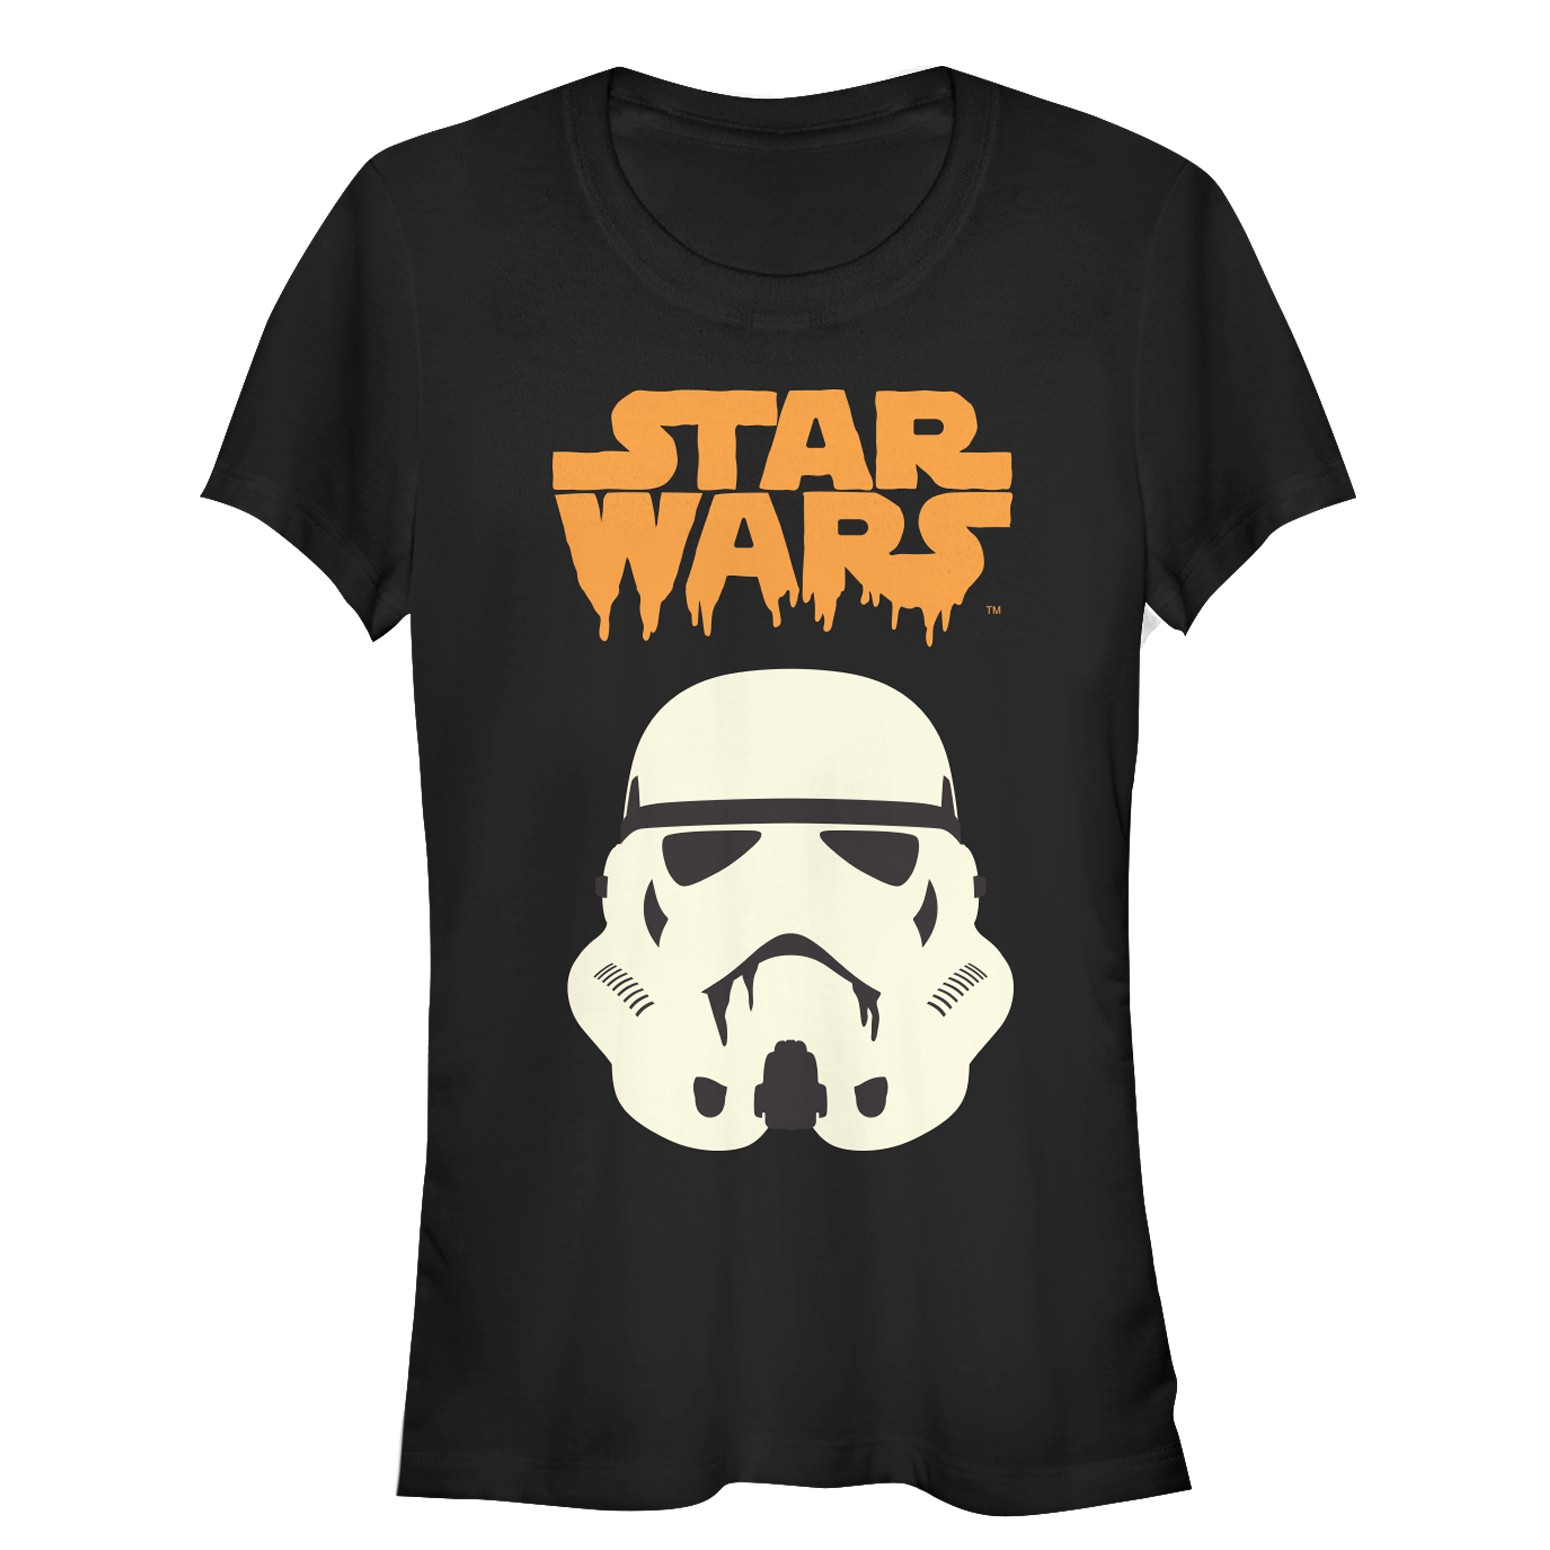 Women's Fifth Sun x Star Wars Halloween Themed Tops